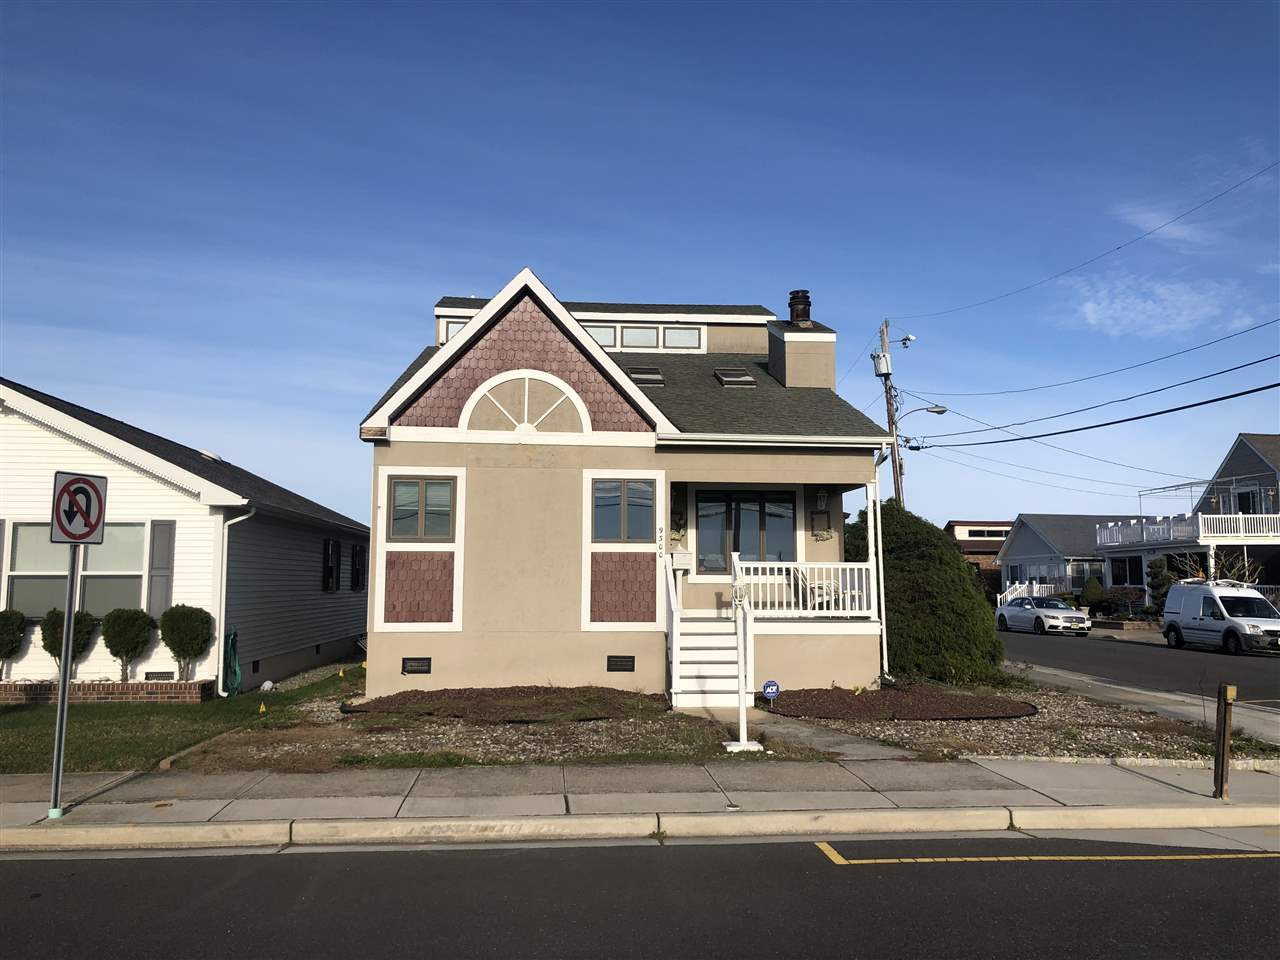 9300 New Jersey, Wildwood Crest